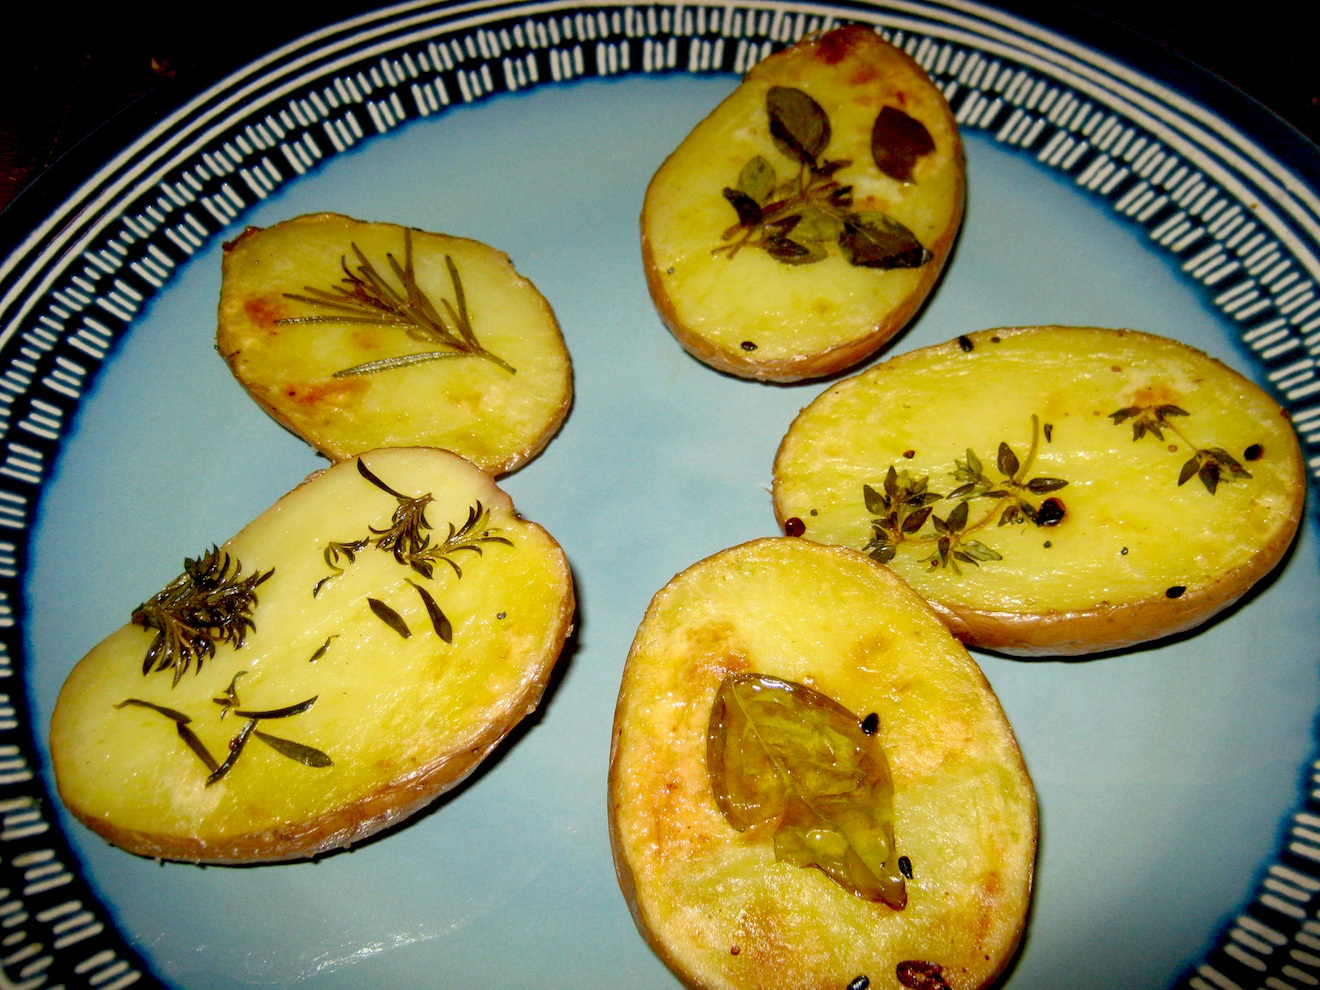 Baked Herb Potatoes on a blue plate